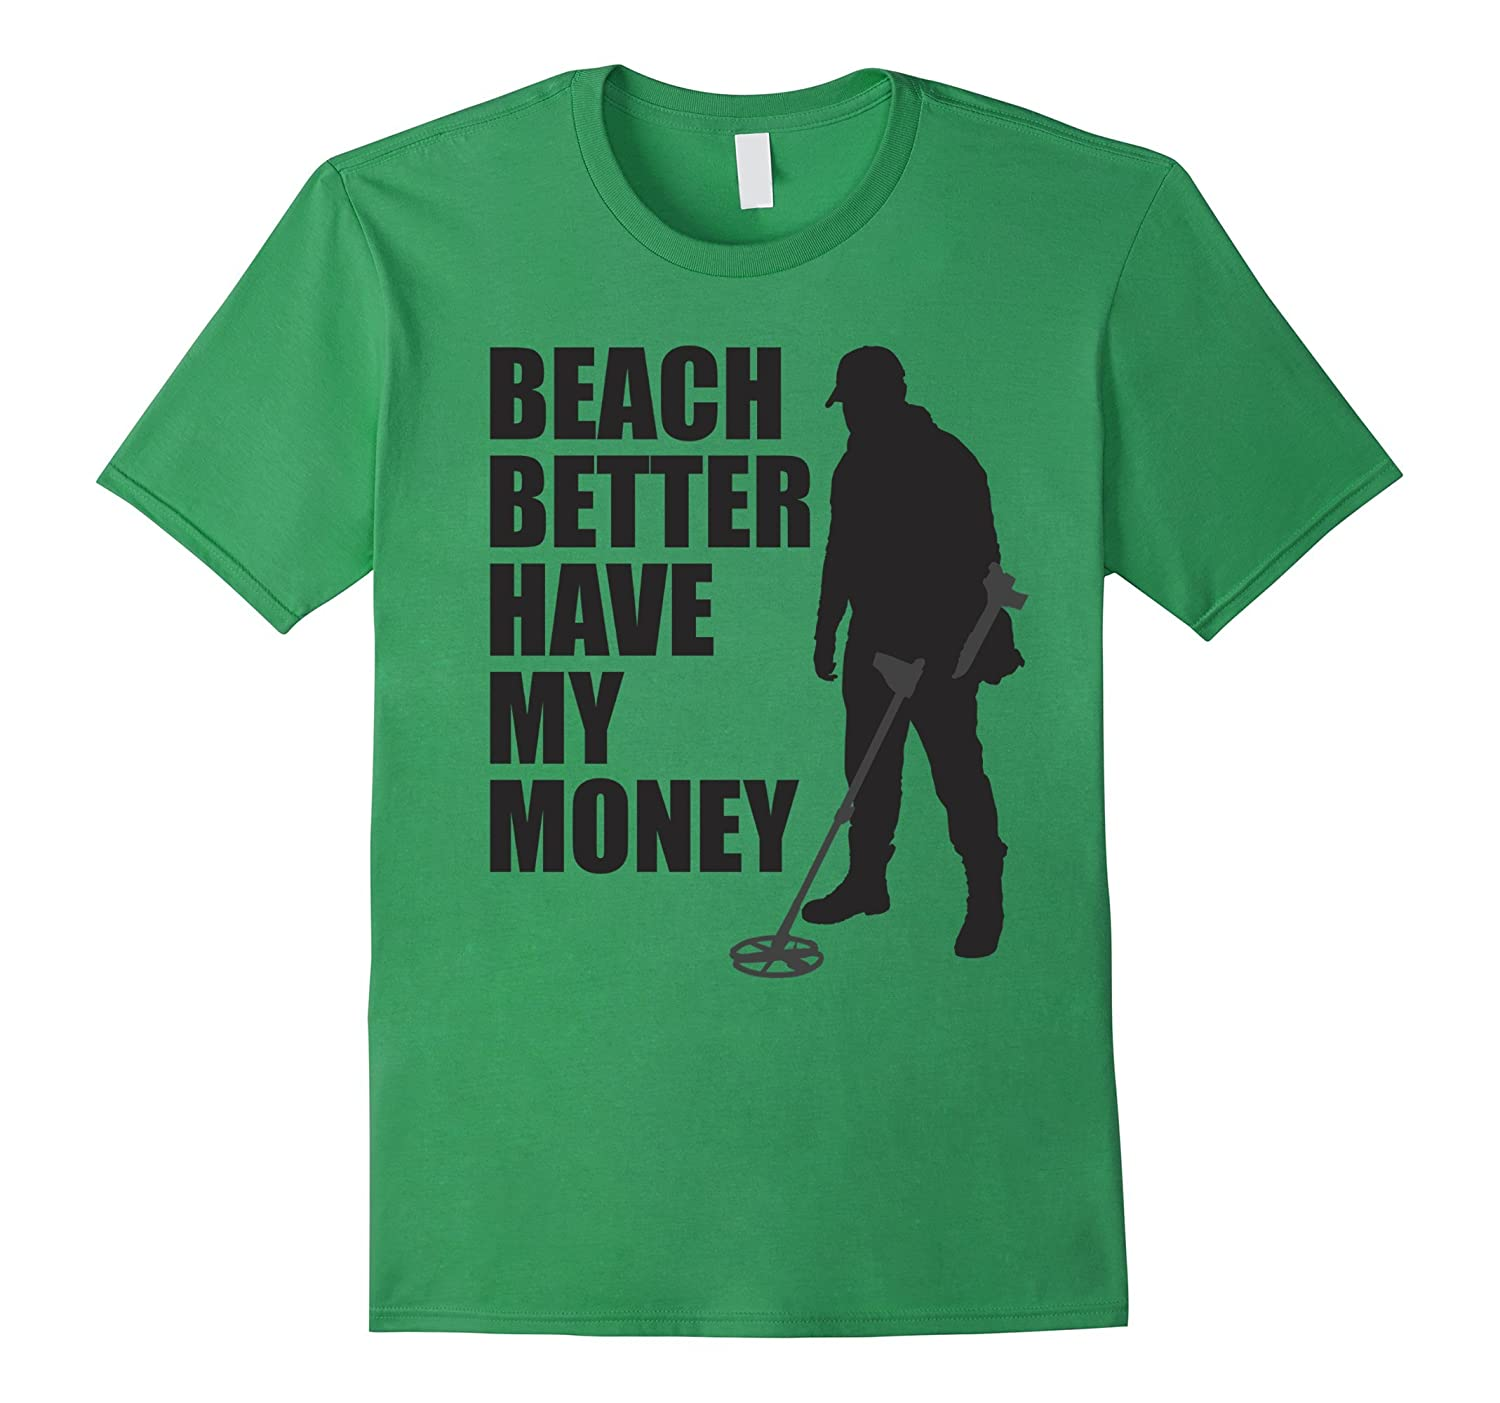 a958474c43 Beach Better Have My Money Funny Silly Metal Detector Shirt-RT ...